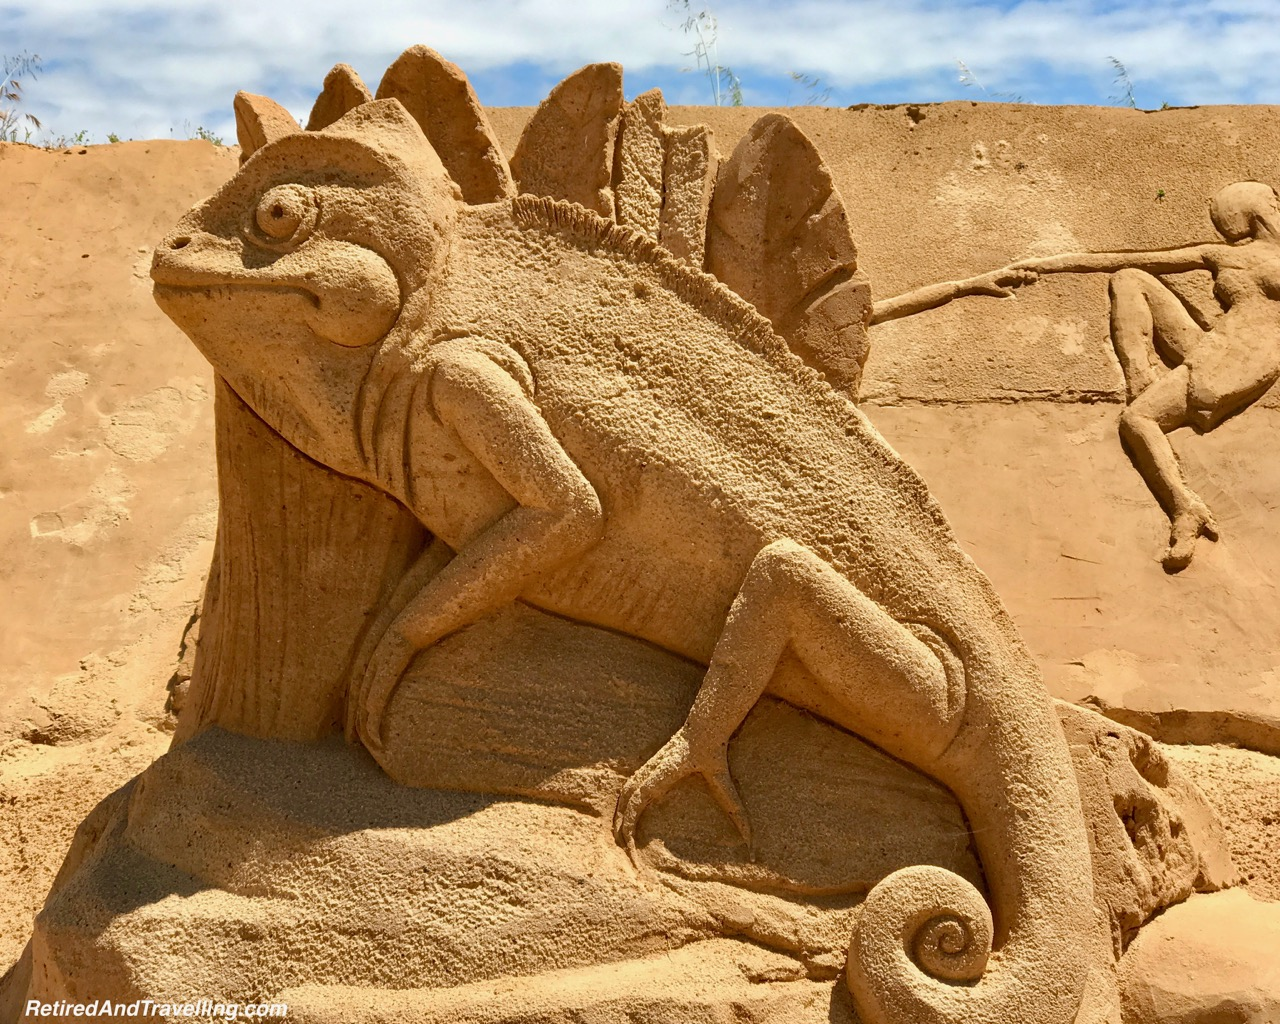 Chameleon Sand Sculpture - Sand City Algarve.jpg